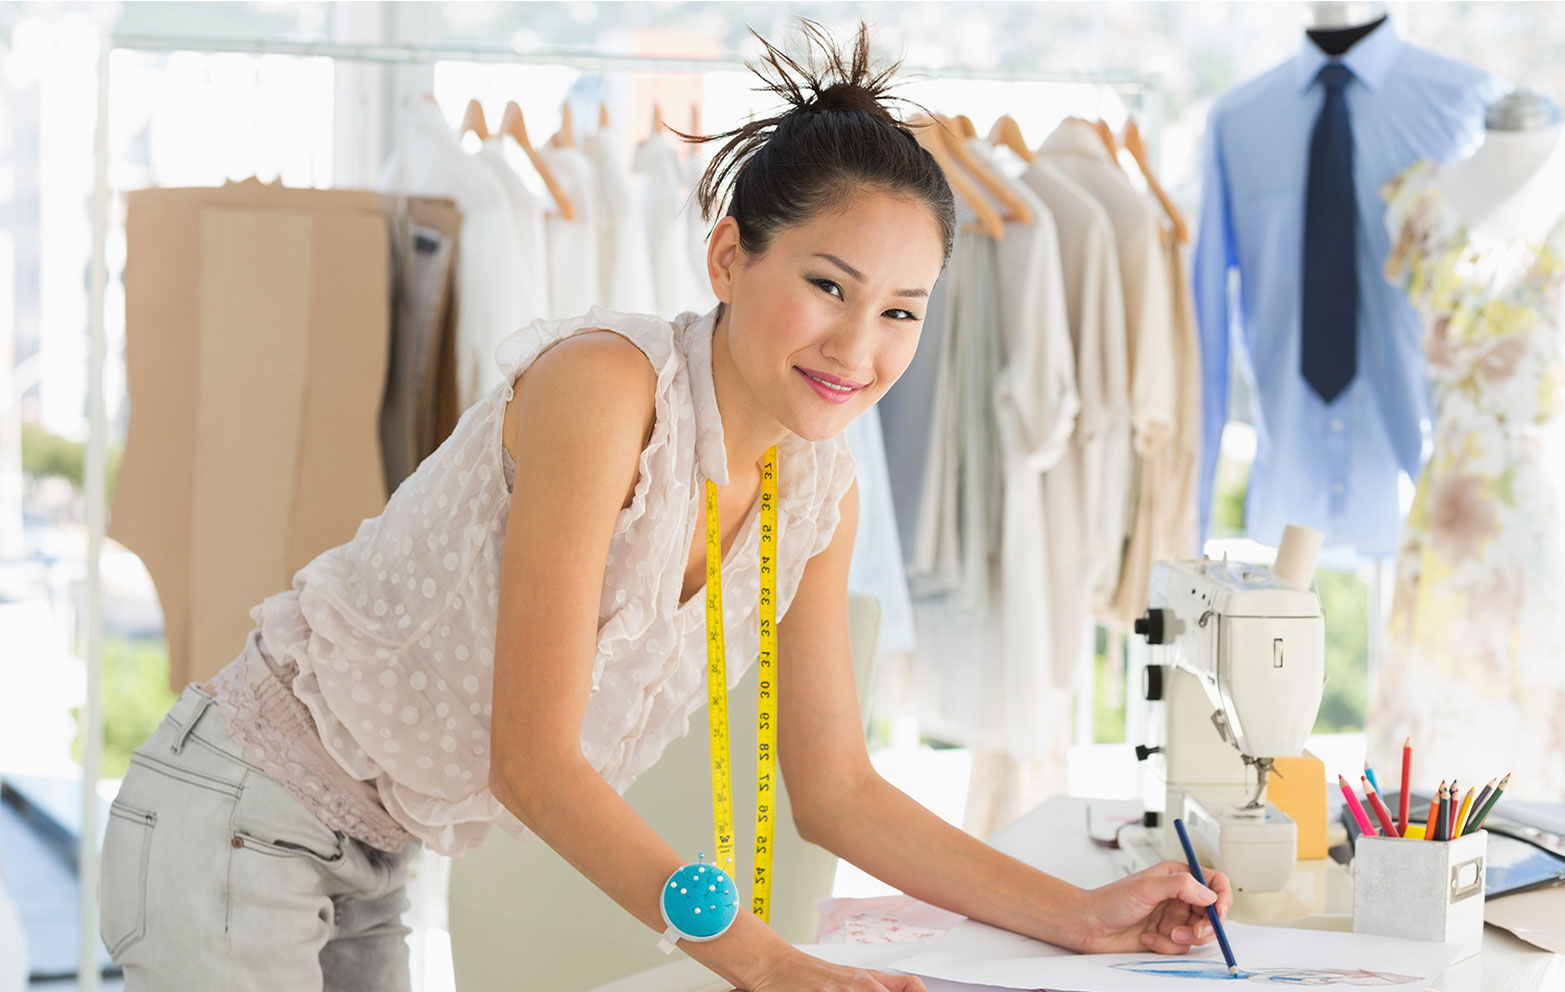 Clothing designer is working her small business